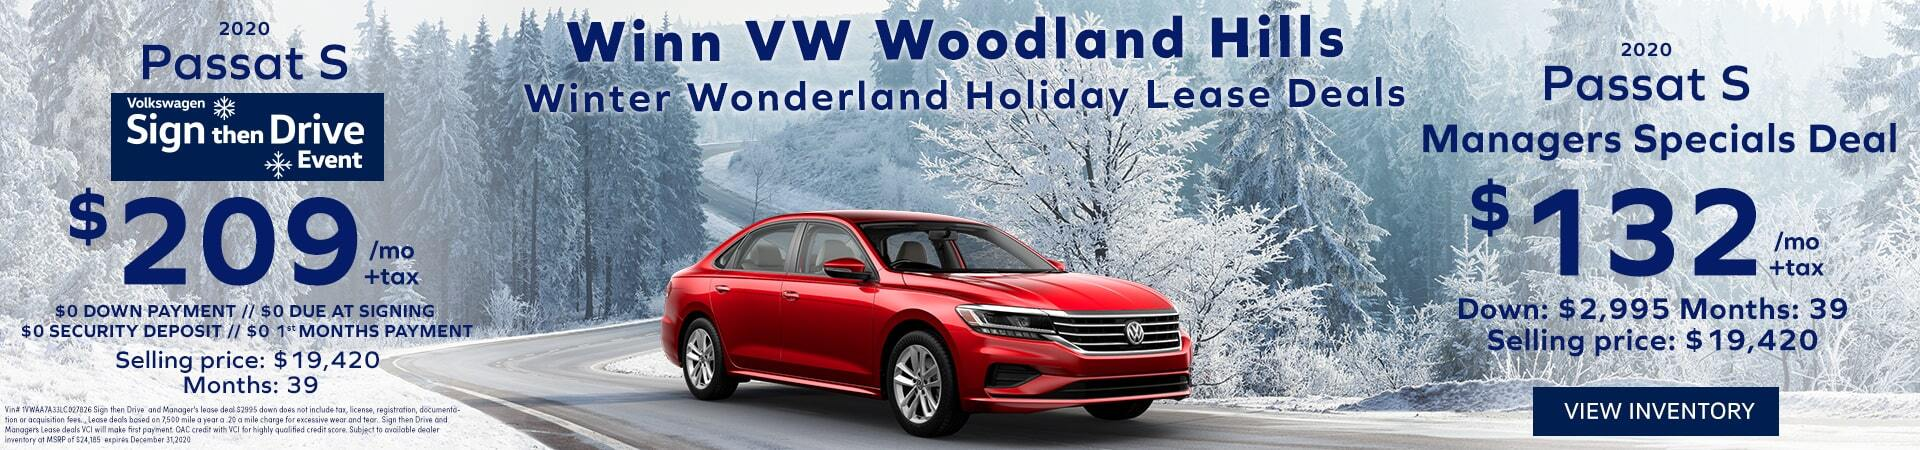 December Passat Sign then Drive lease deals